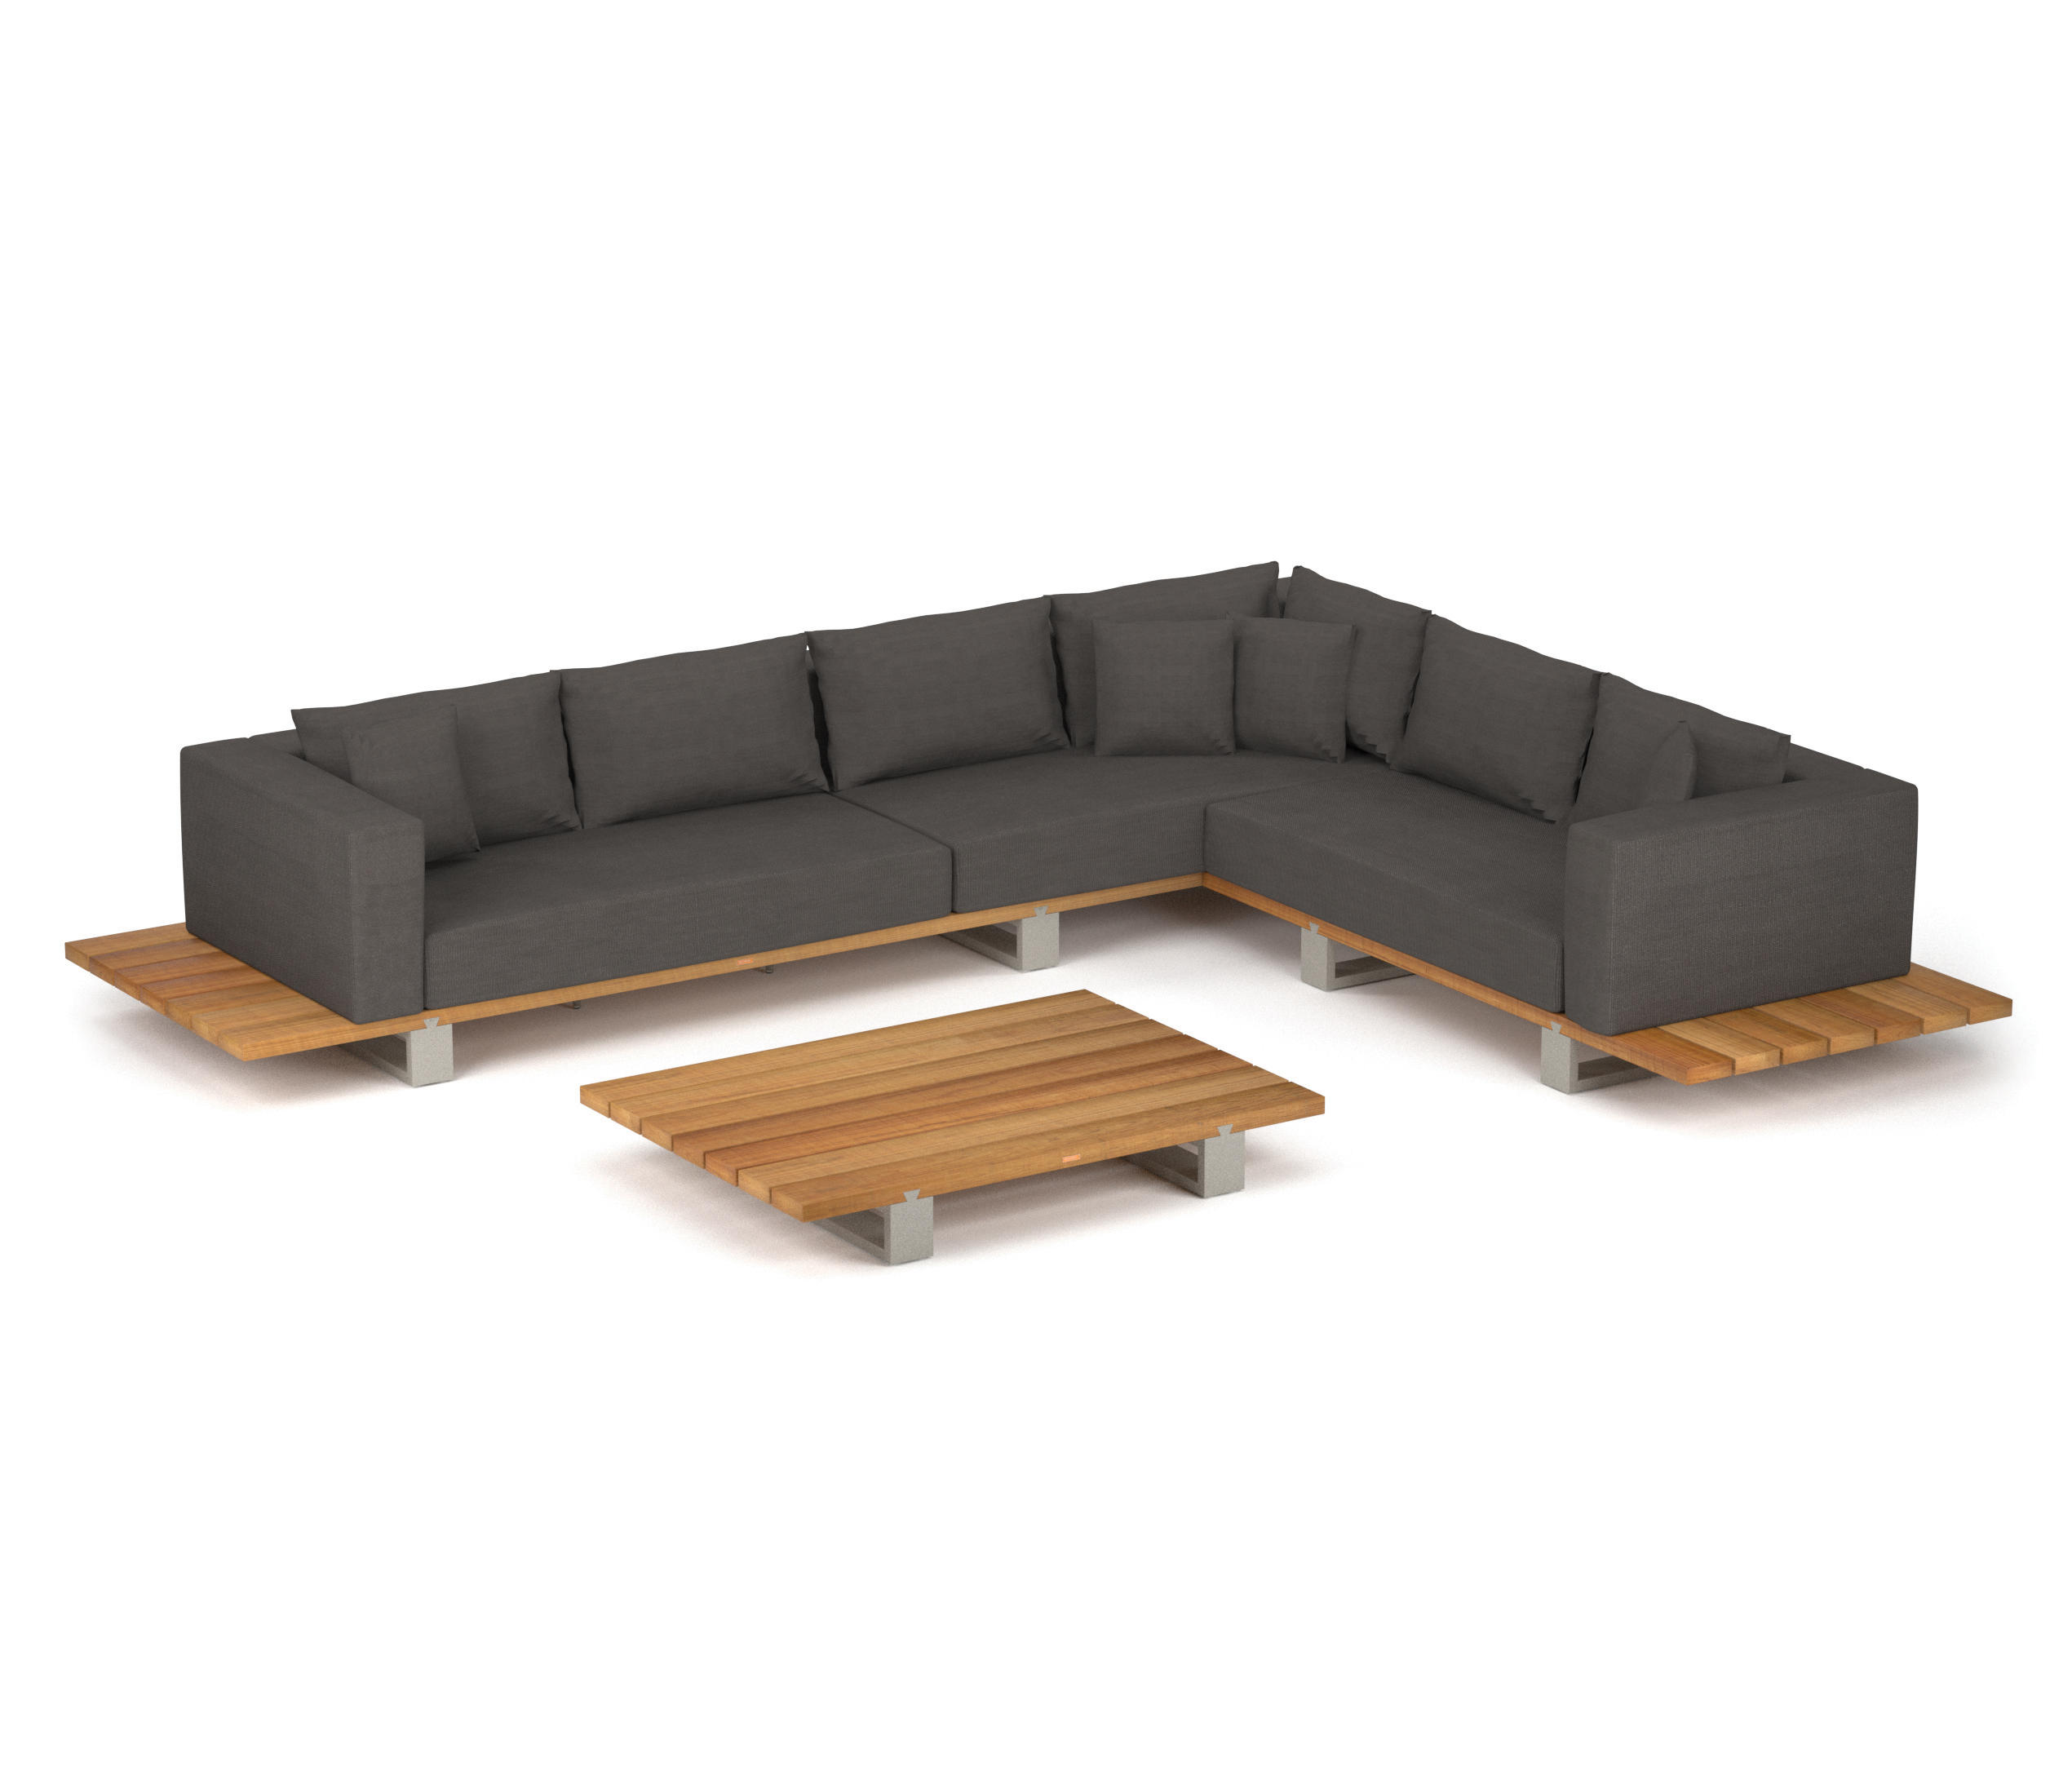 vigor lounge garden sofas from royal botania architonic. Black Bedroom Furniture Sets. Home Design Ideas